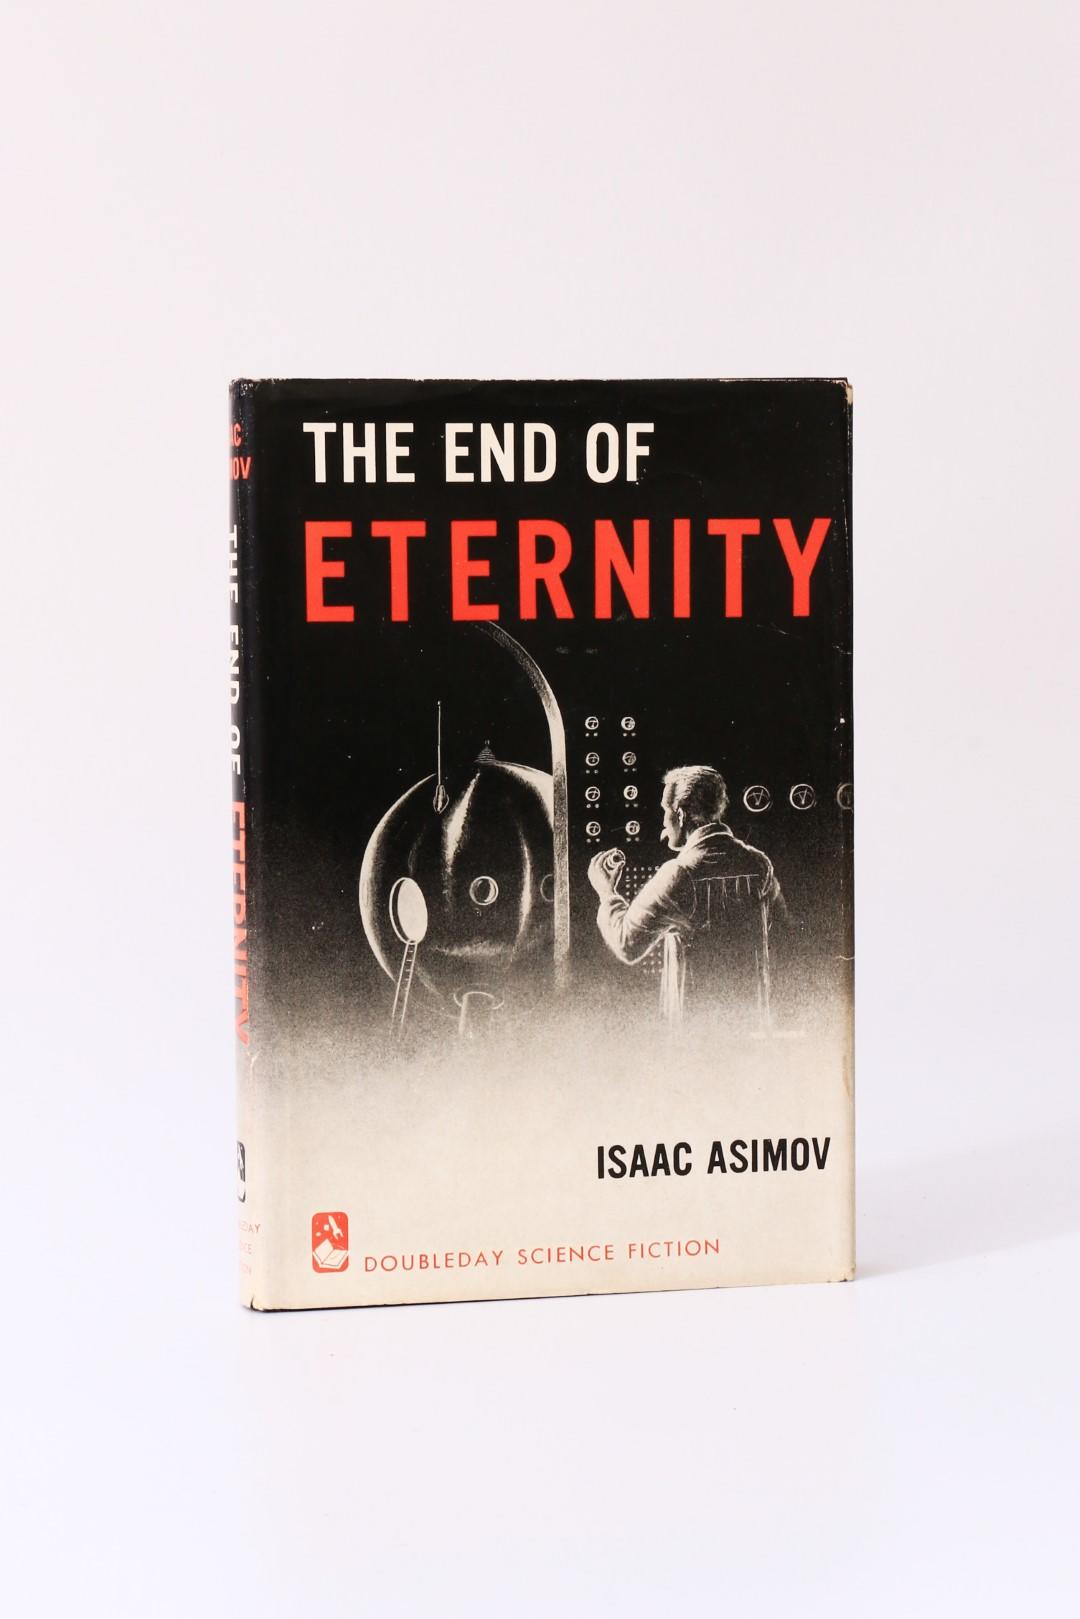 Isaac Asimov - The End of Eternity - Doubleday, 1955, First Edition.